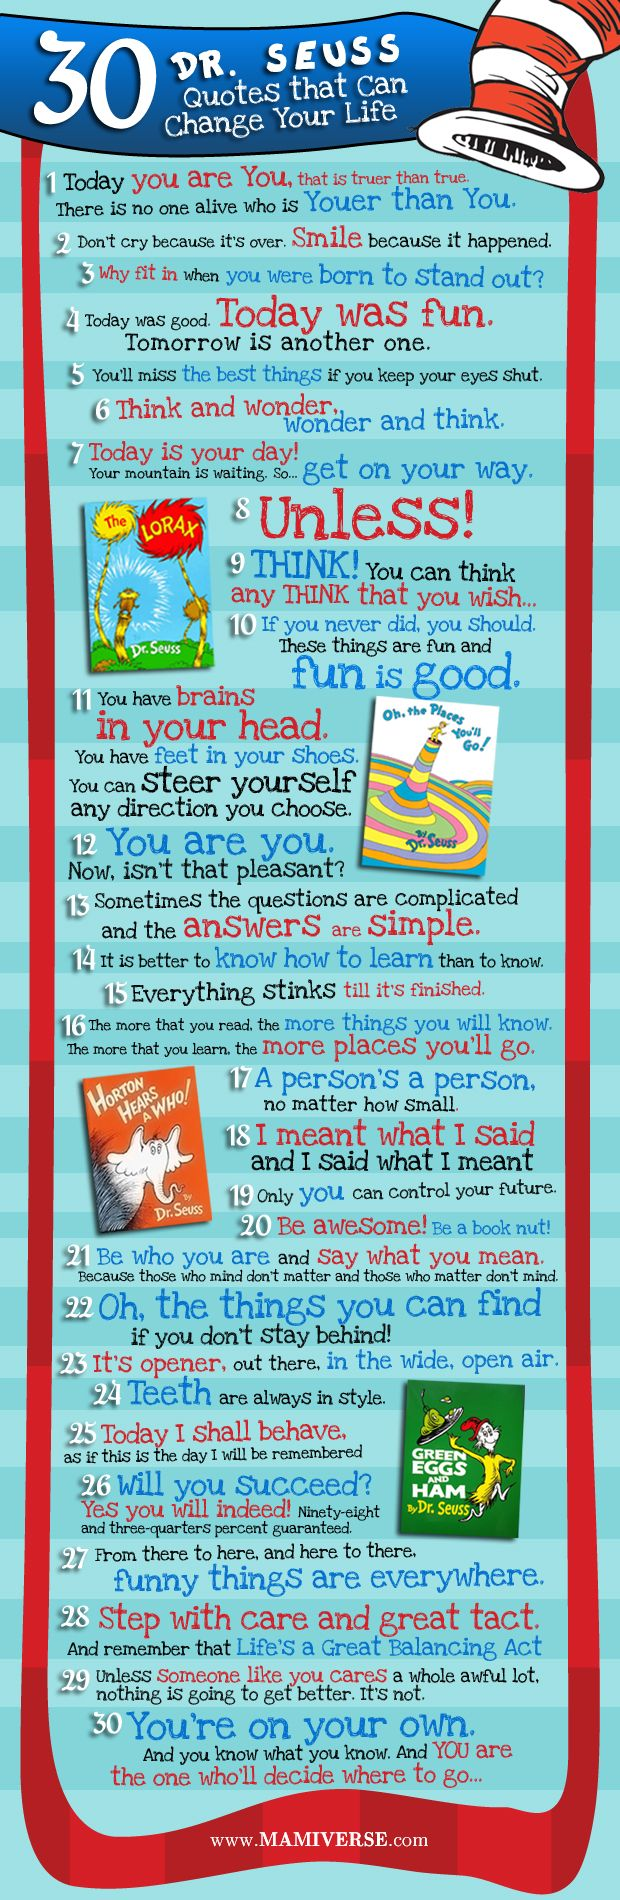 30 Seuss quotes